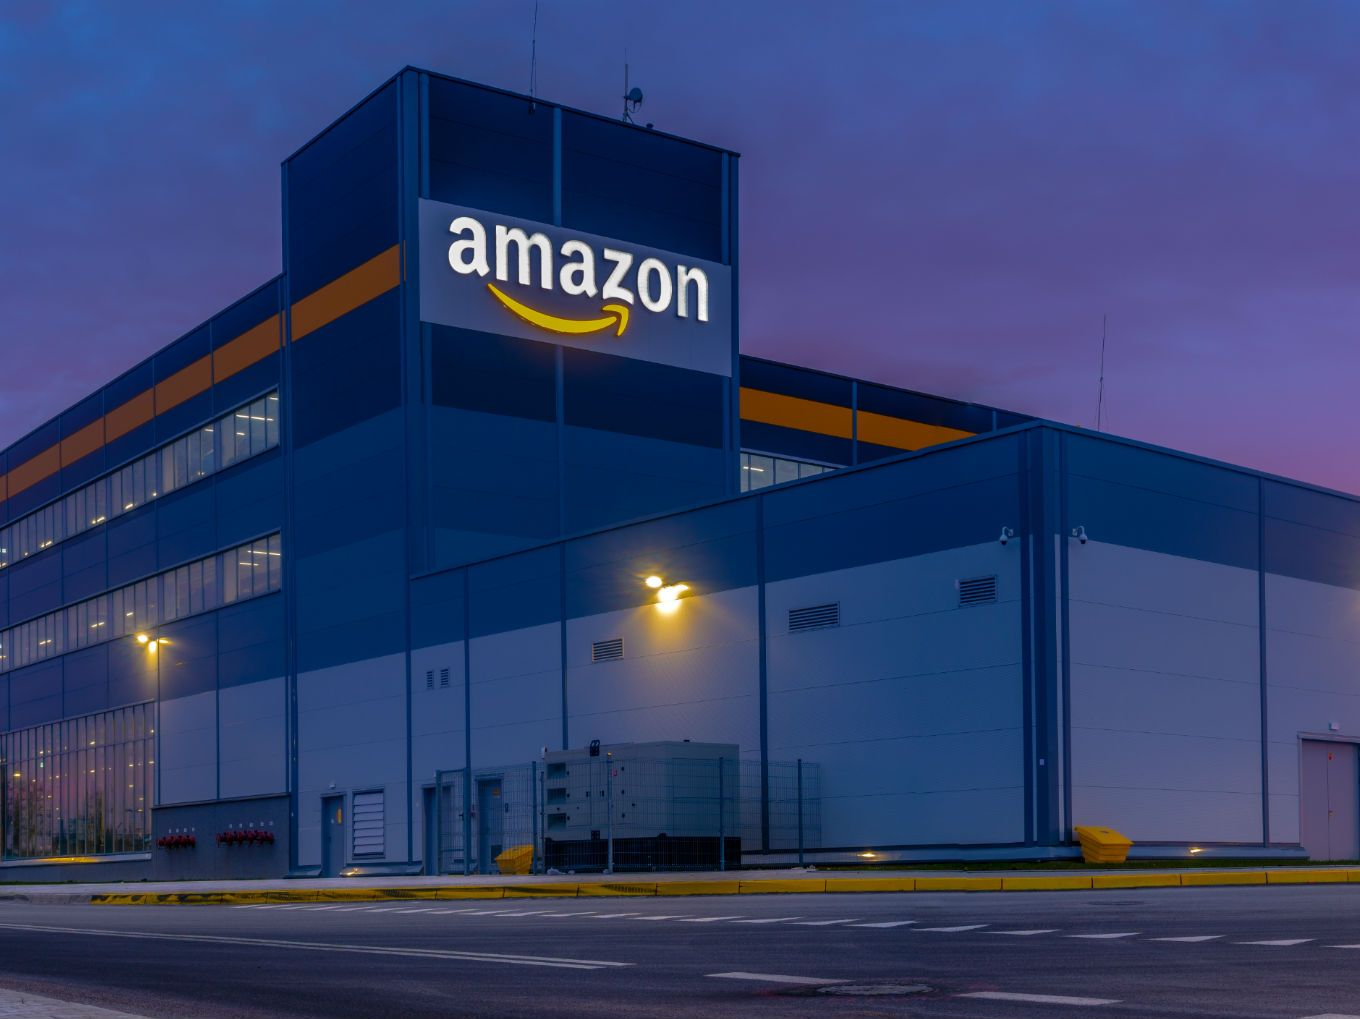 Automation May Claim 1,300 Jobs At Amazon Warehouses In The US: Report